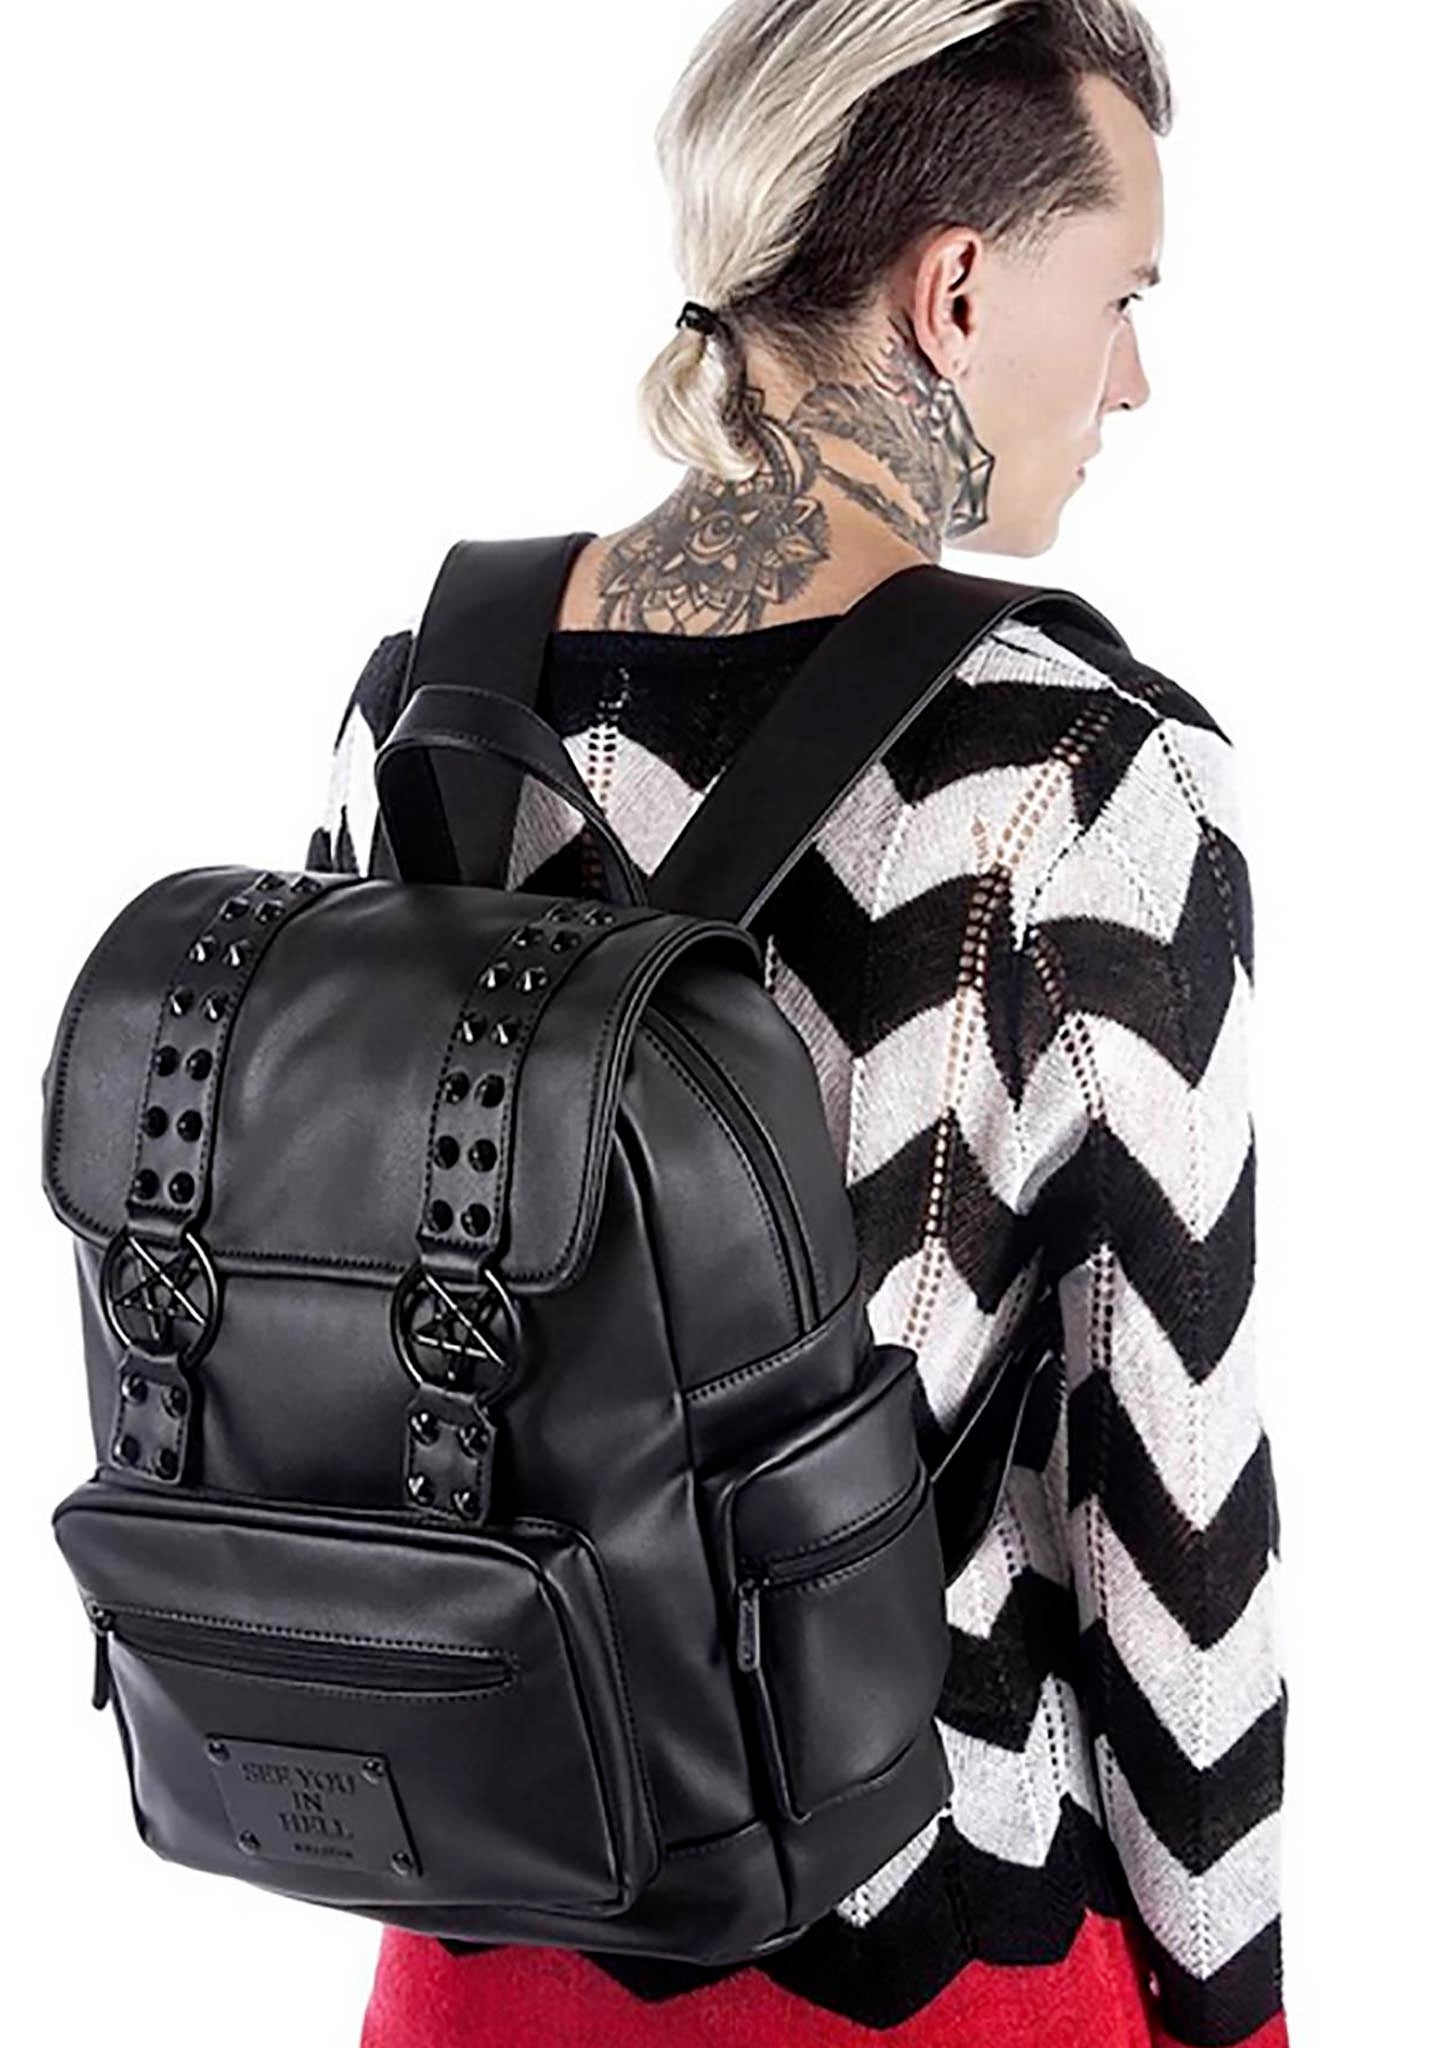 Phantom Backpack e029400b4e5a1